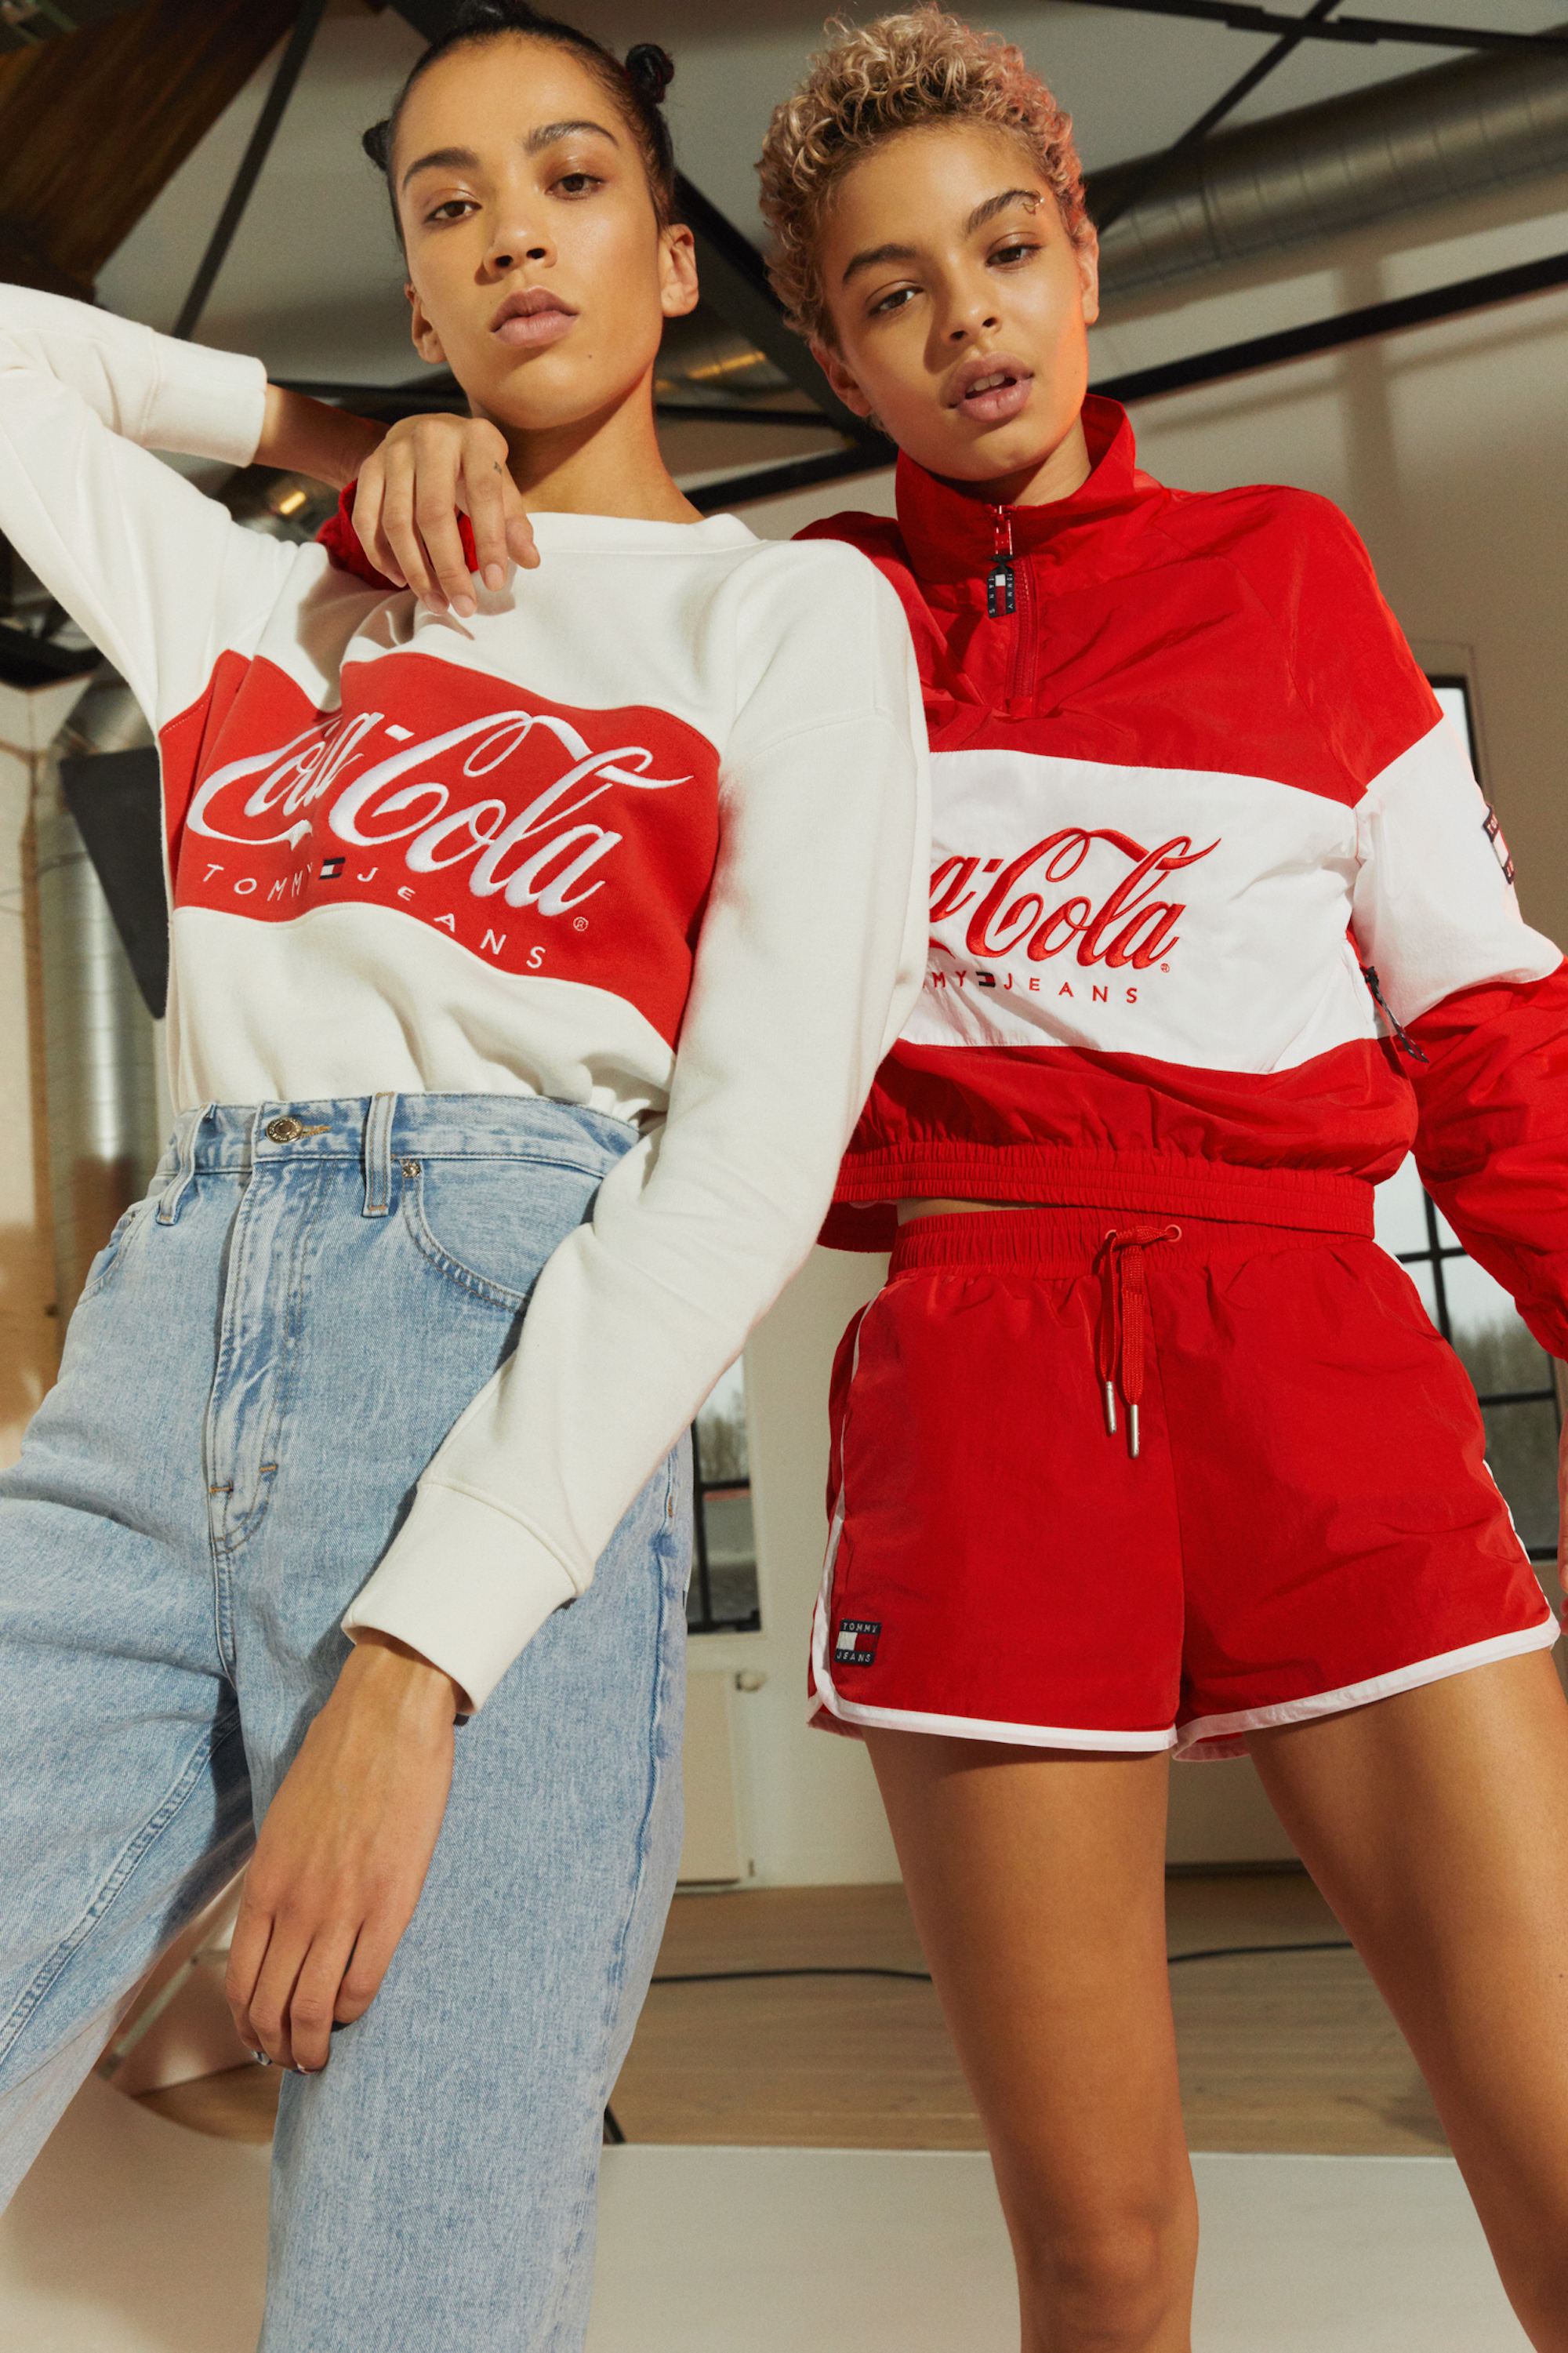 Tommy Hilfiger launches Tommy Jeans Coca-Cola collection two models